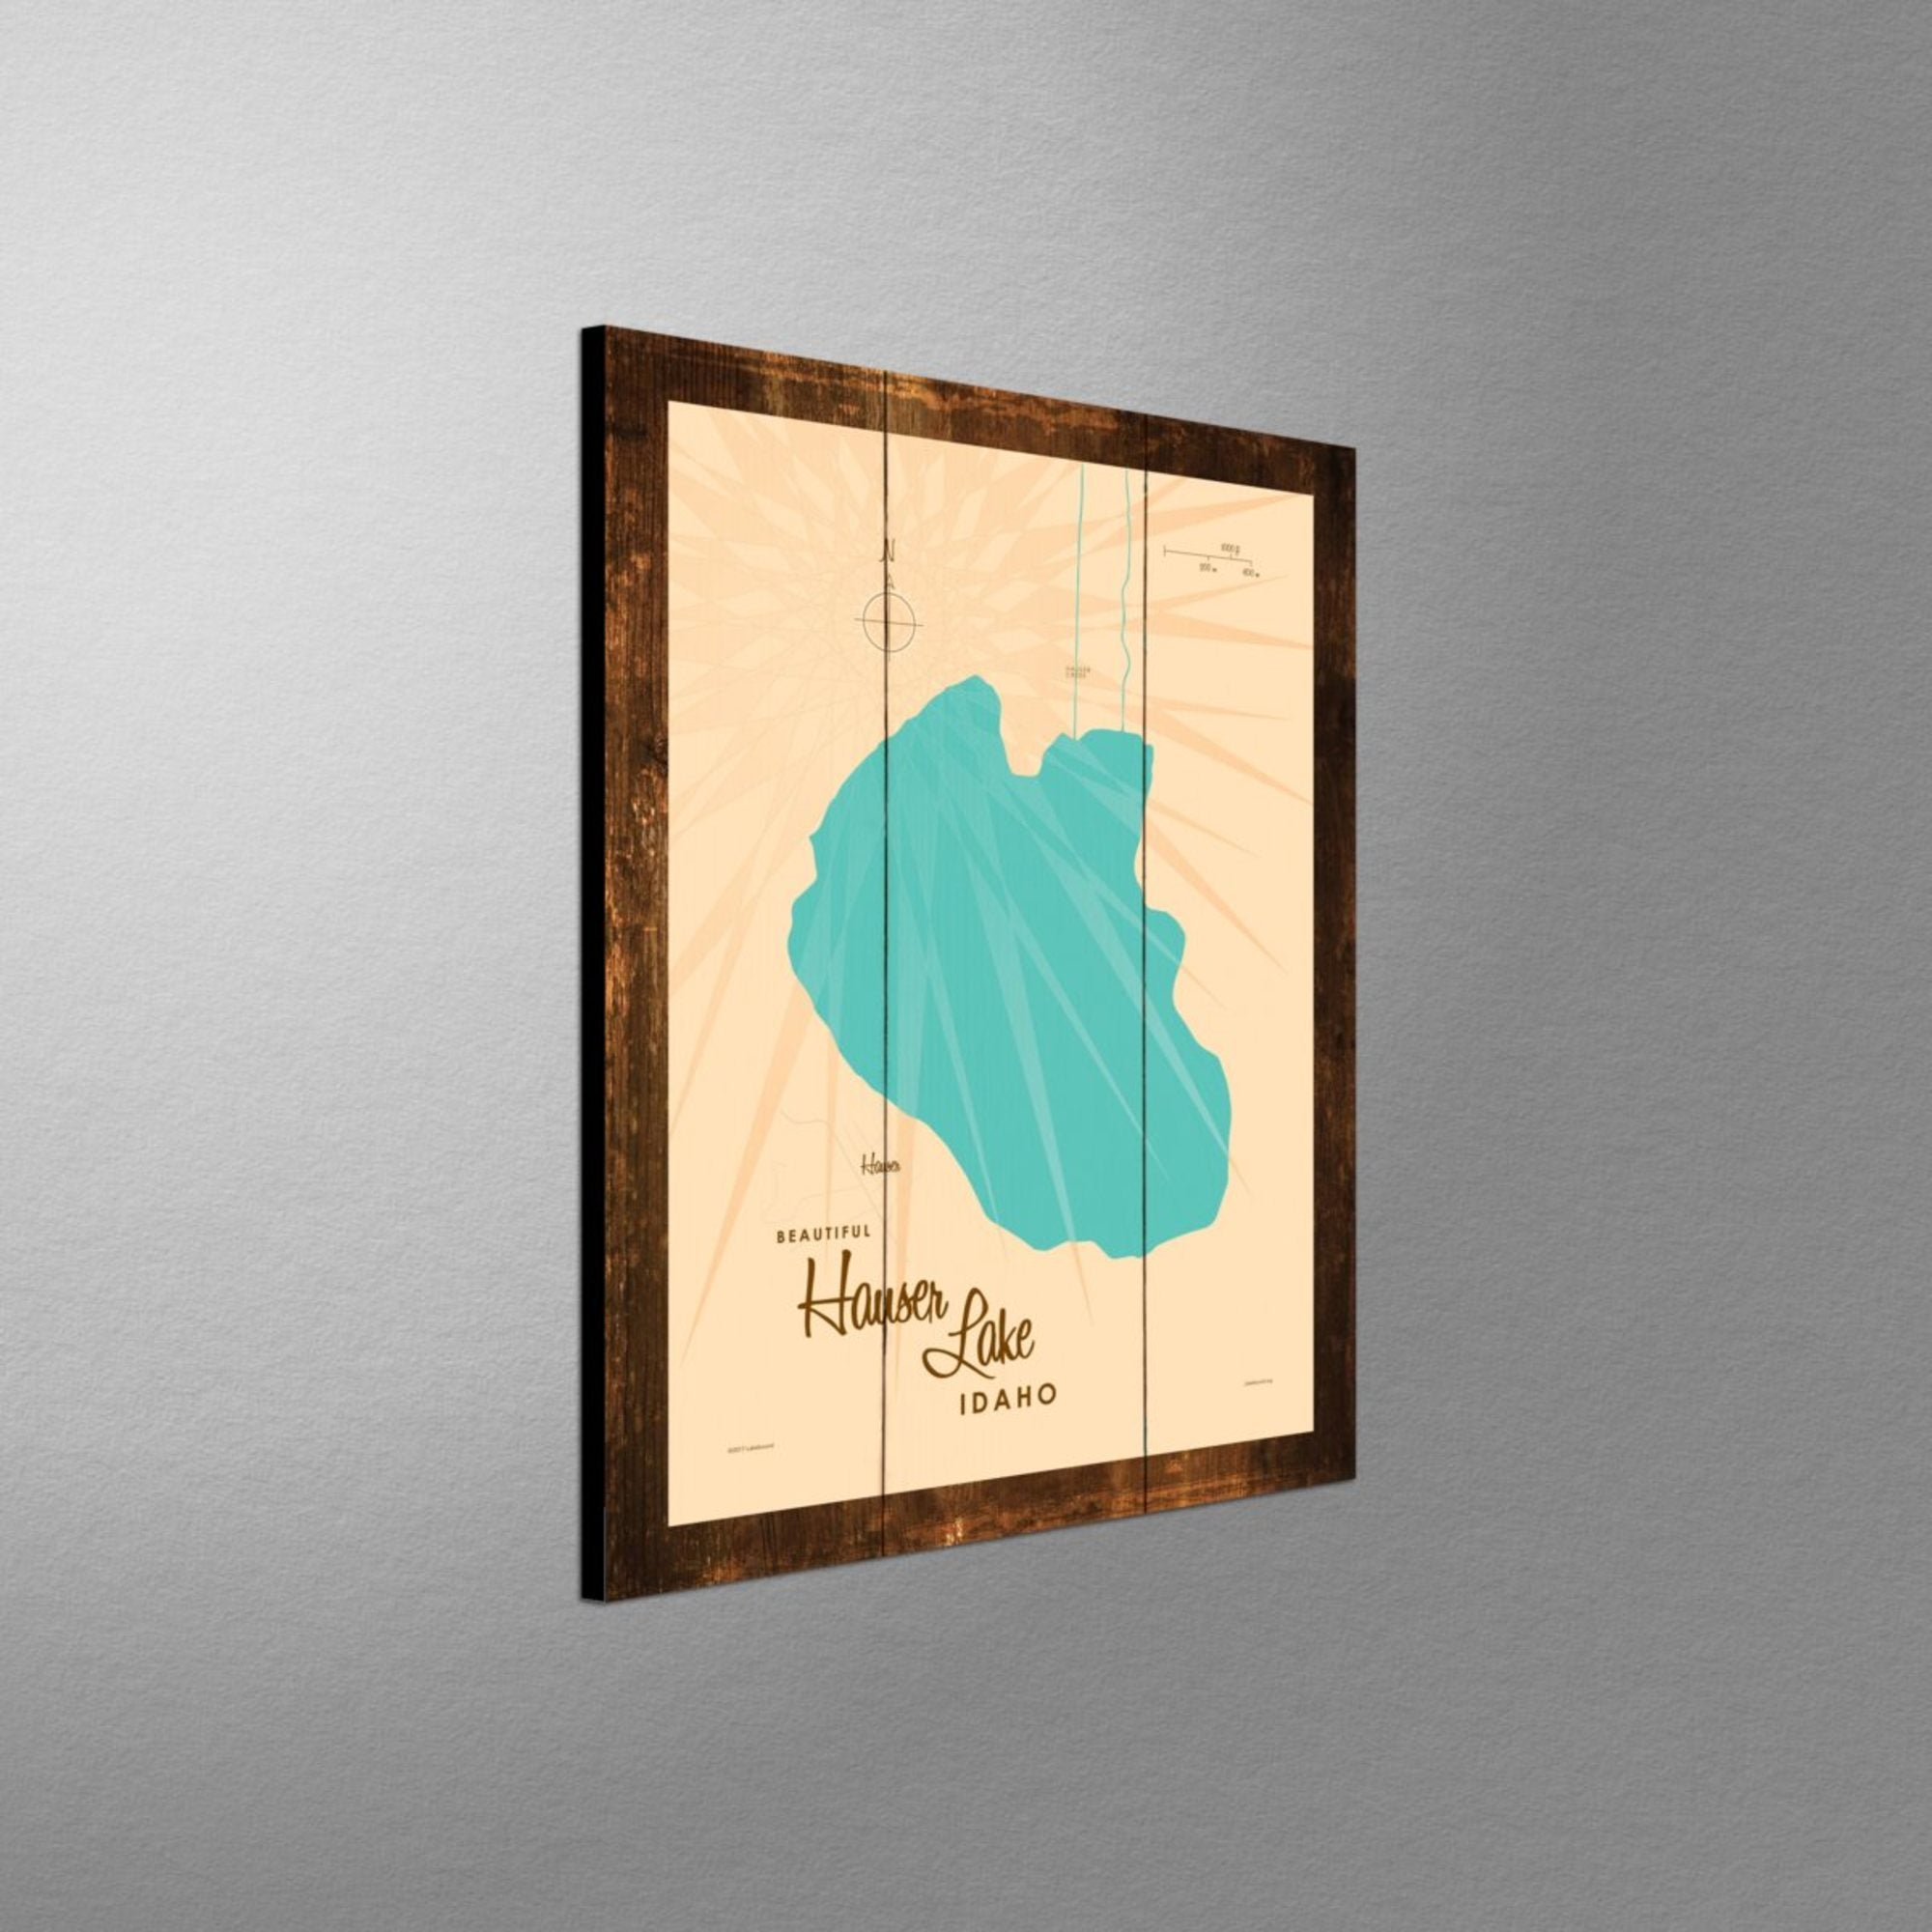 Hauser Lake Idaho, Rustic Wood Sign Map Art